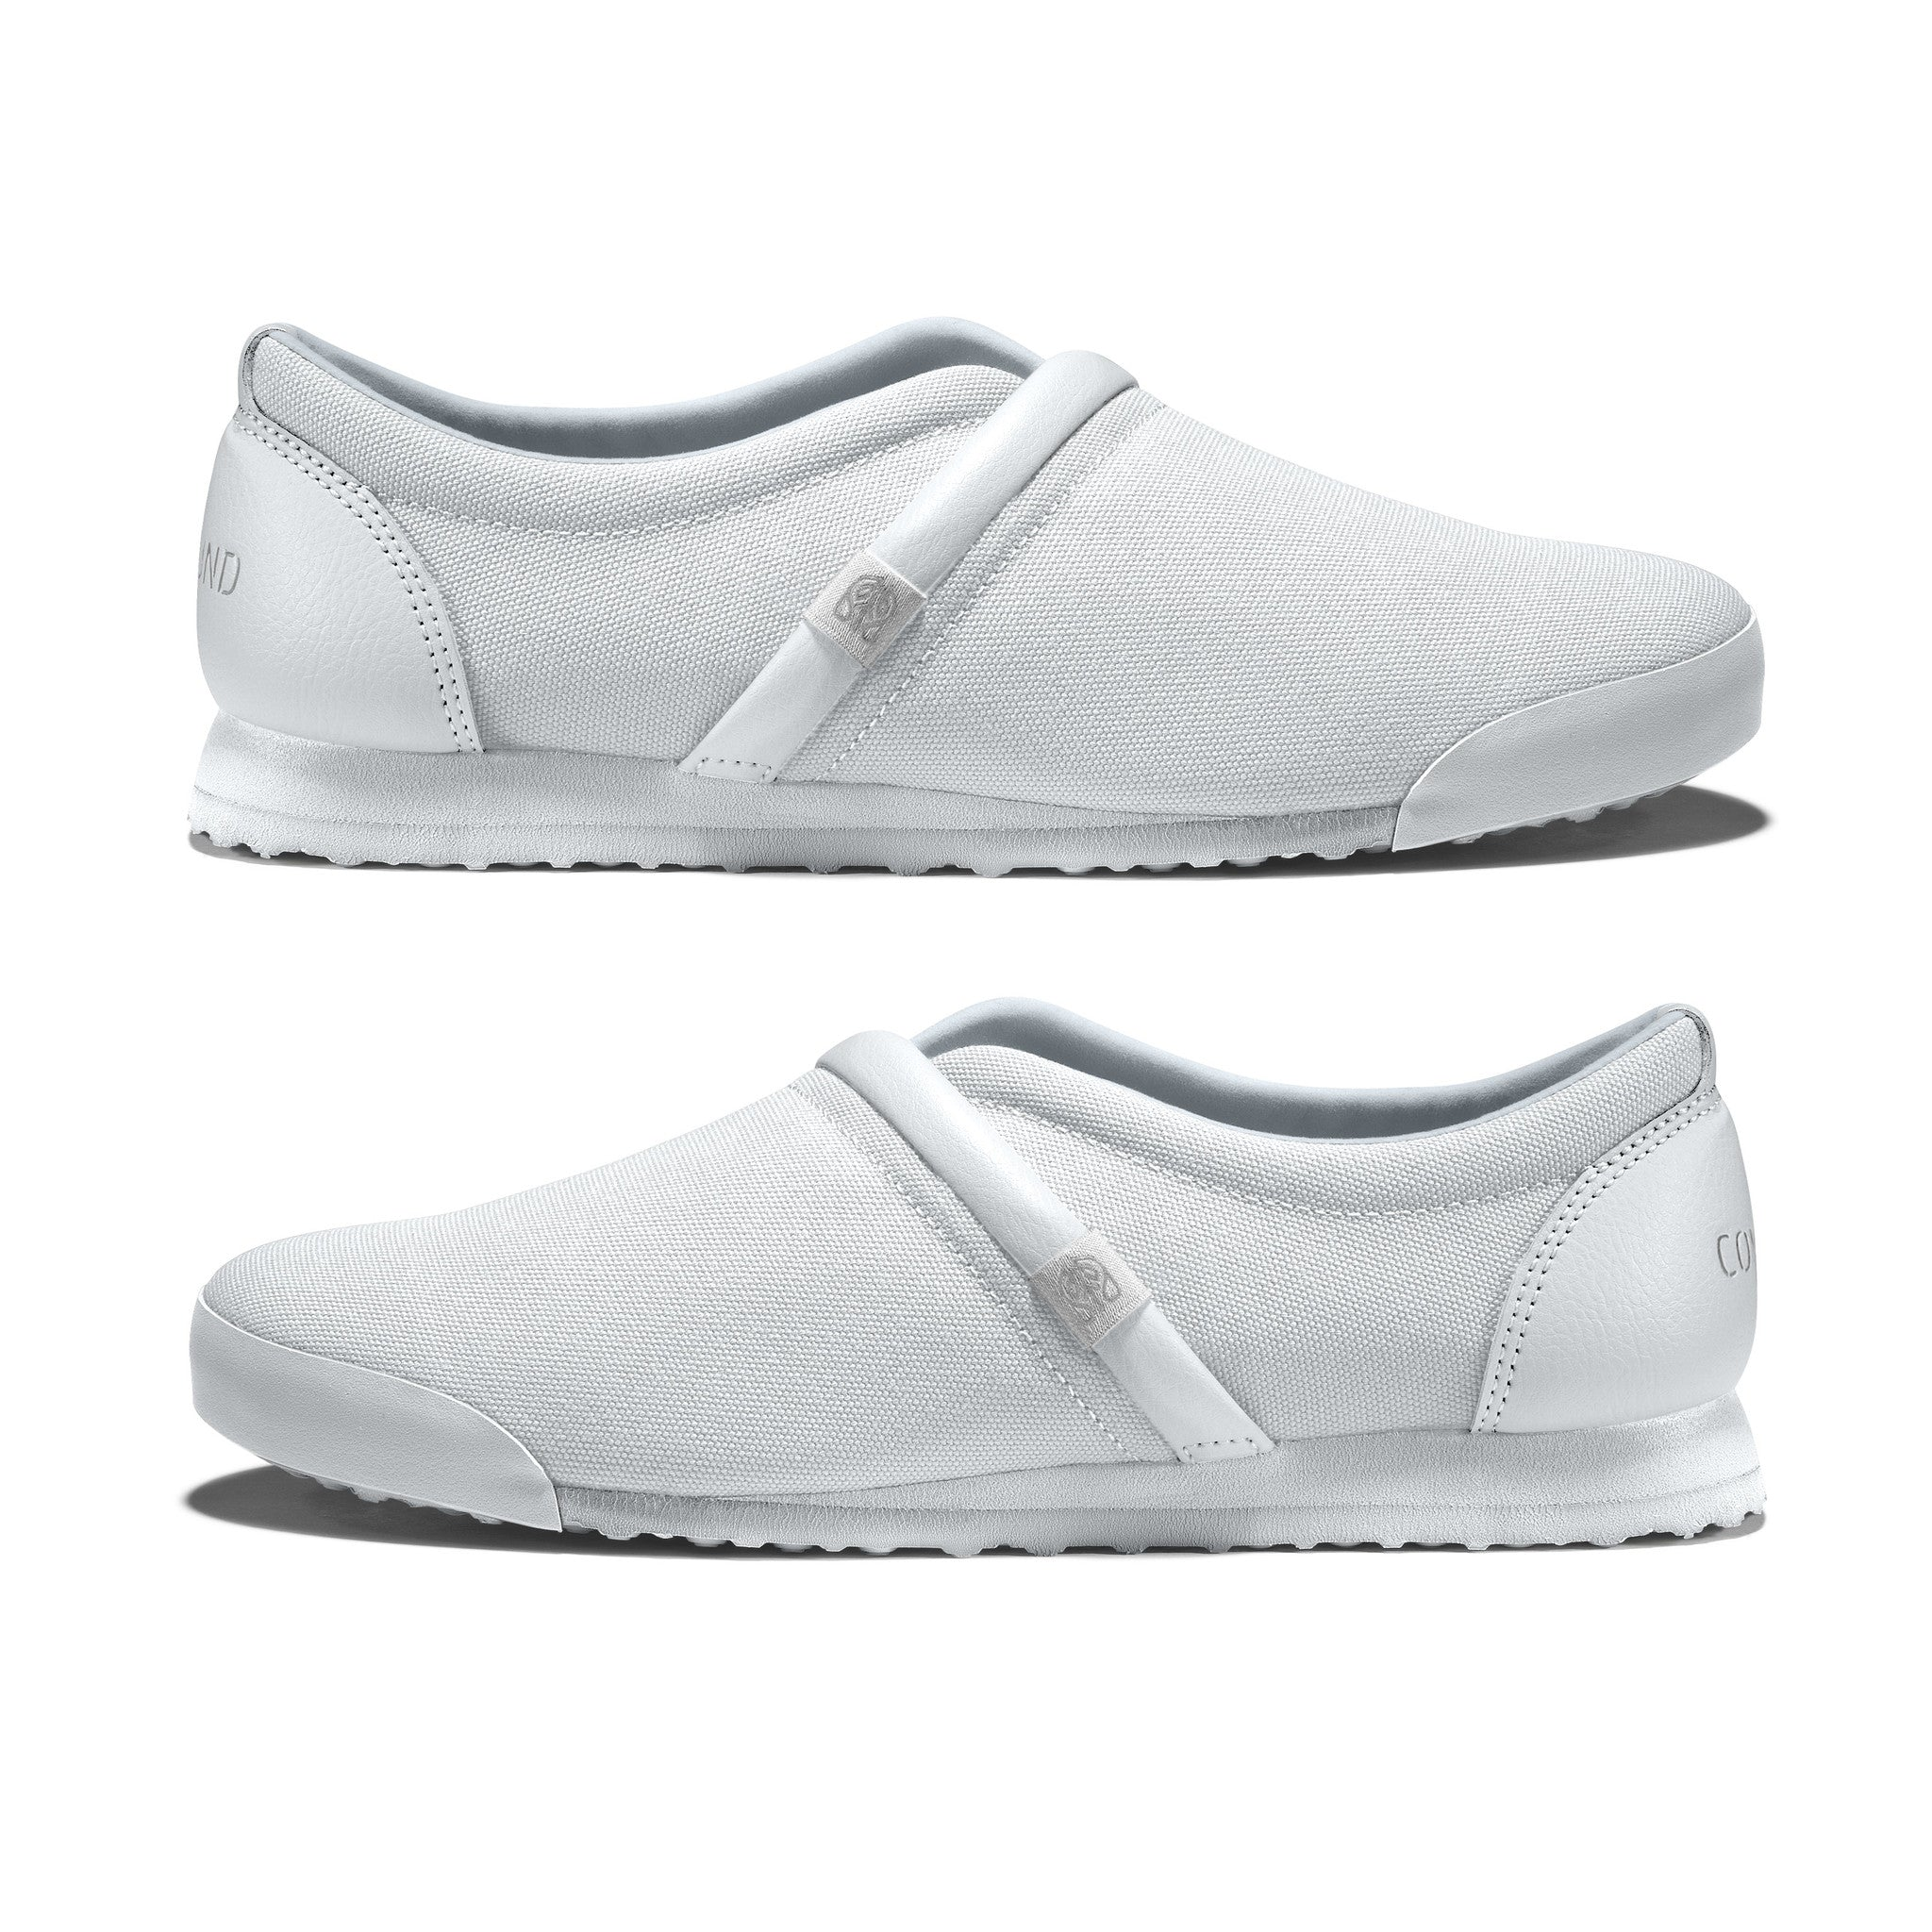 Bright_White - Common Ground Footwear Shoes Side View